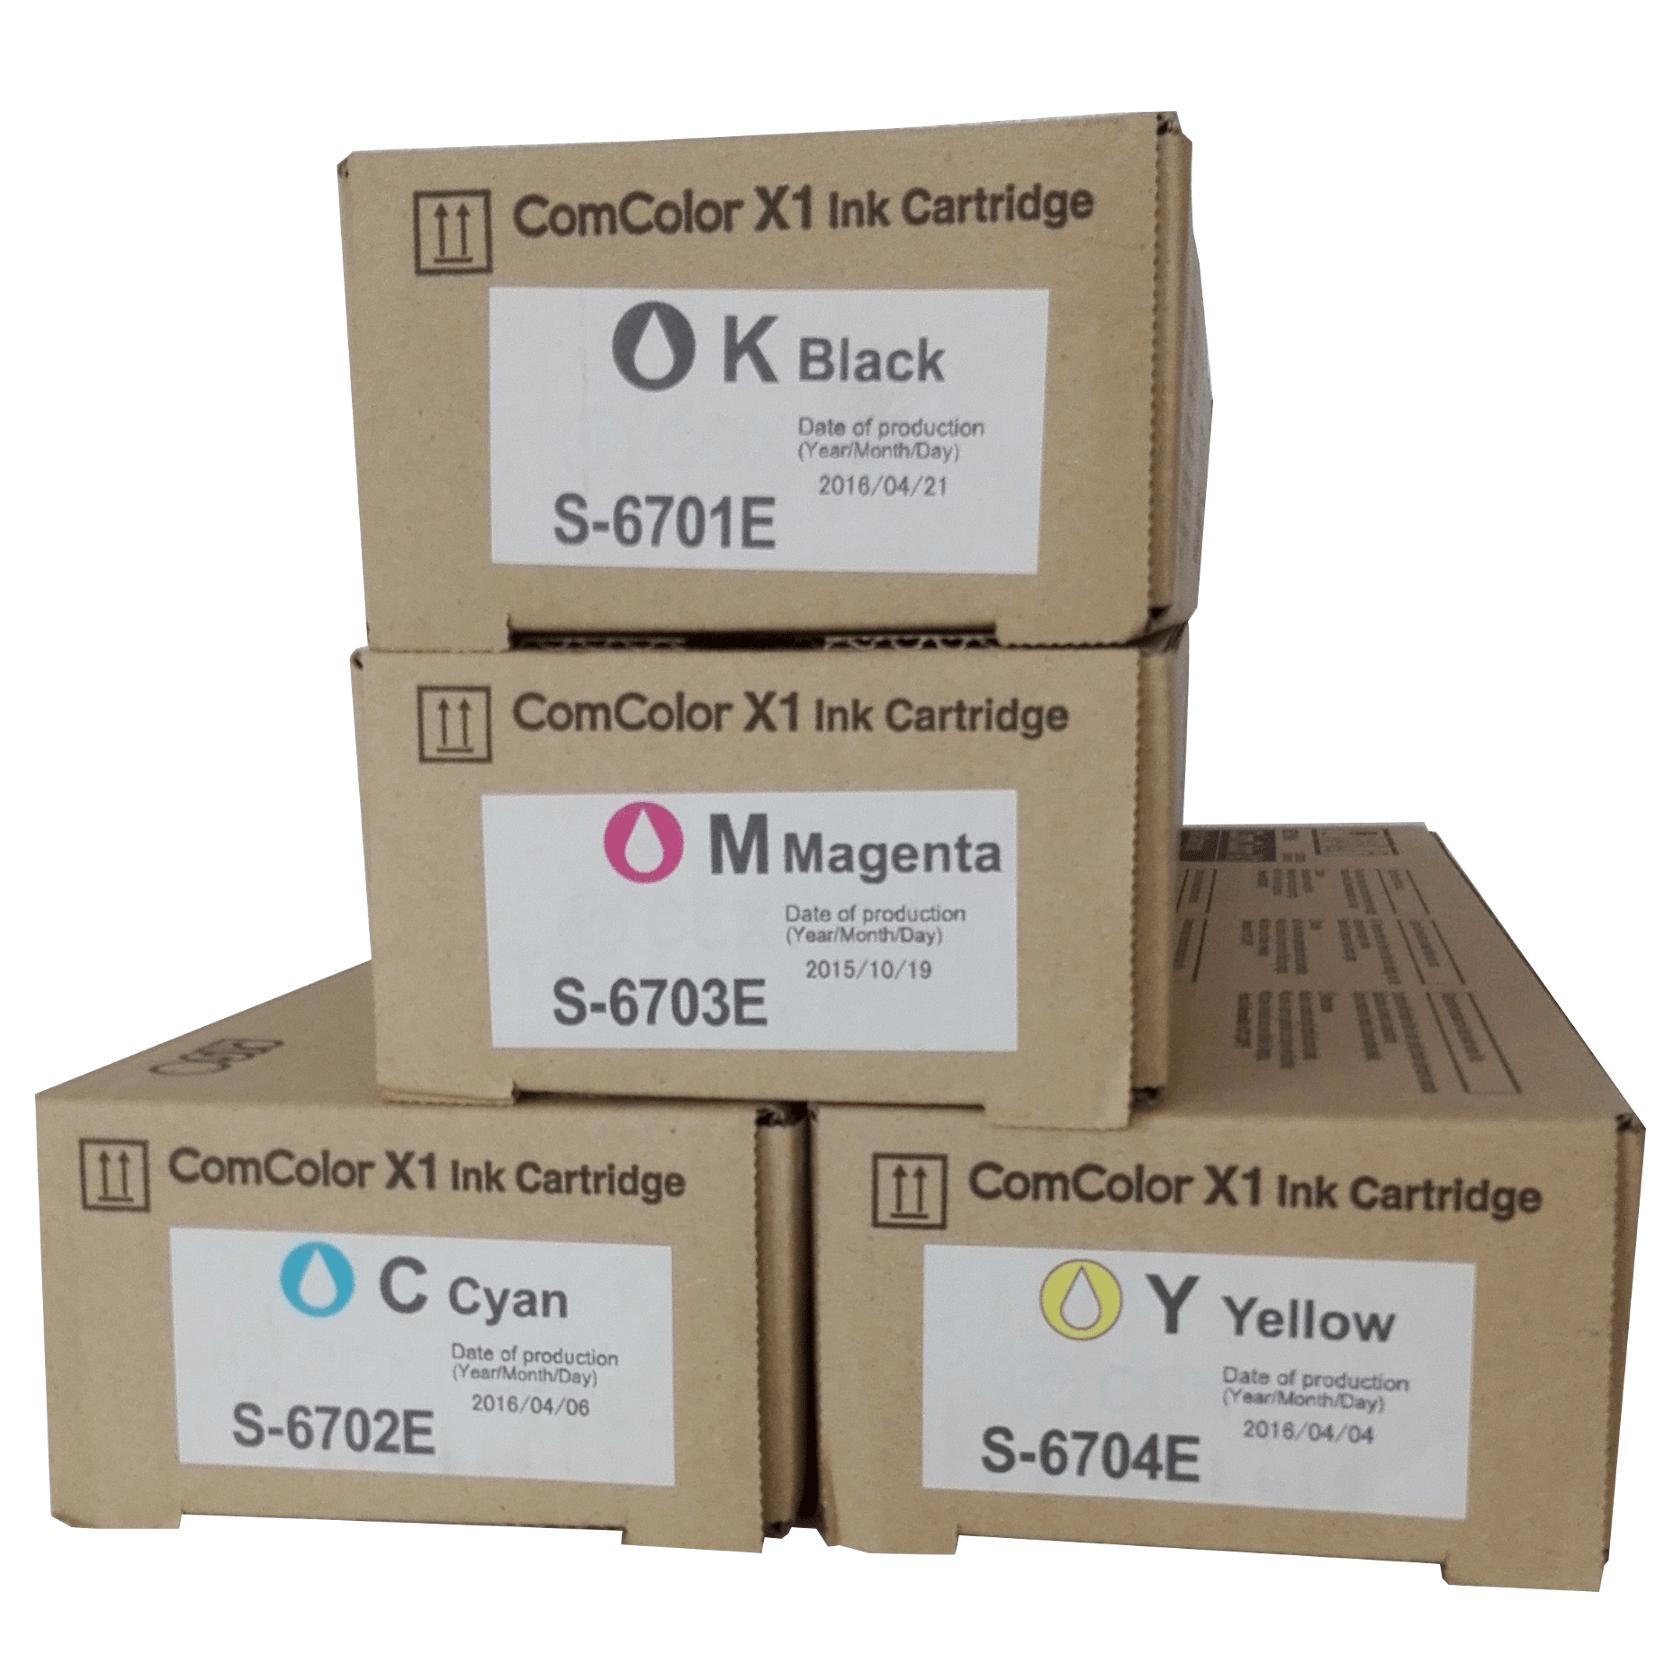 Farby (tusze) Riso - ComColor X1 Ink Cartridge - S-6701E S-6702E S-6703E S-6704E